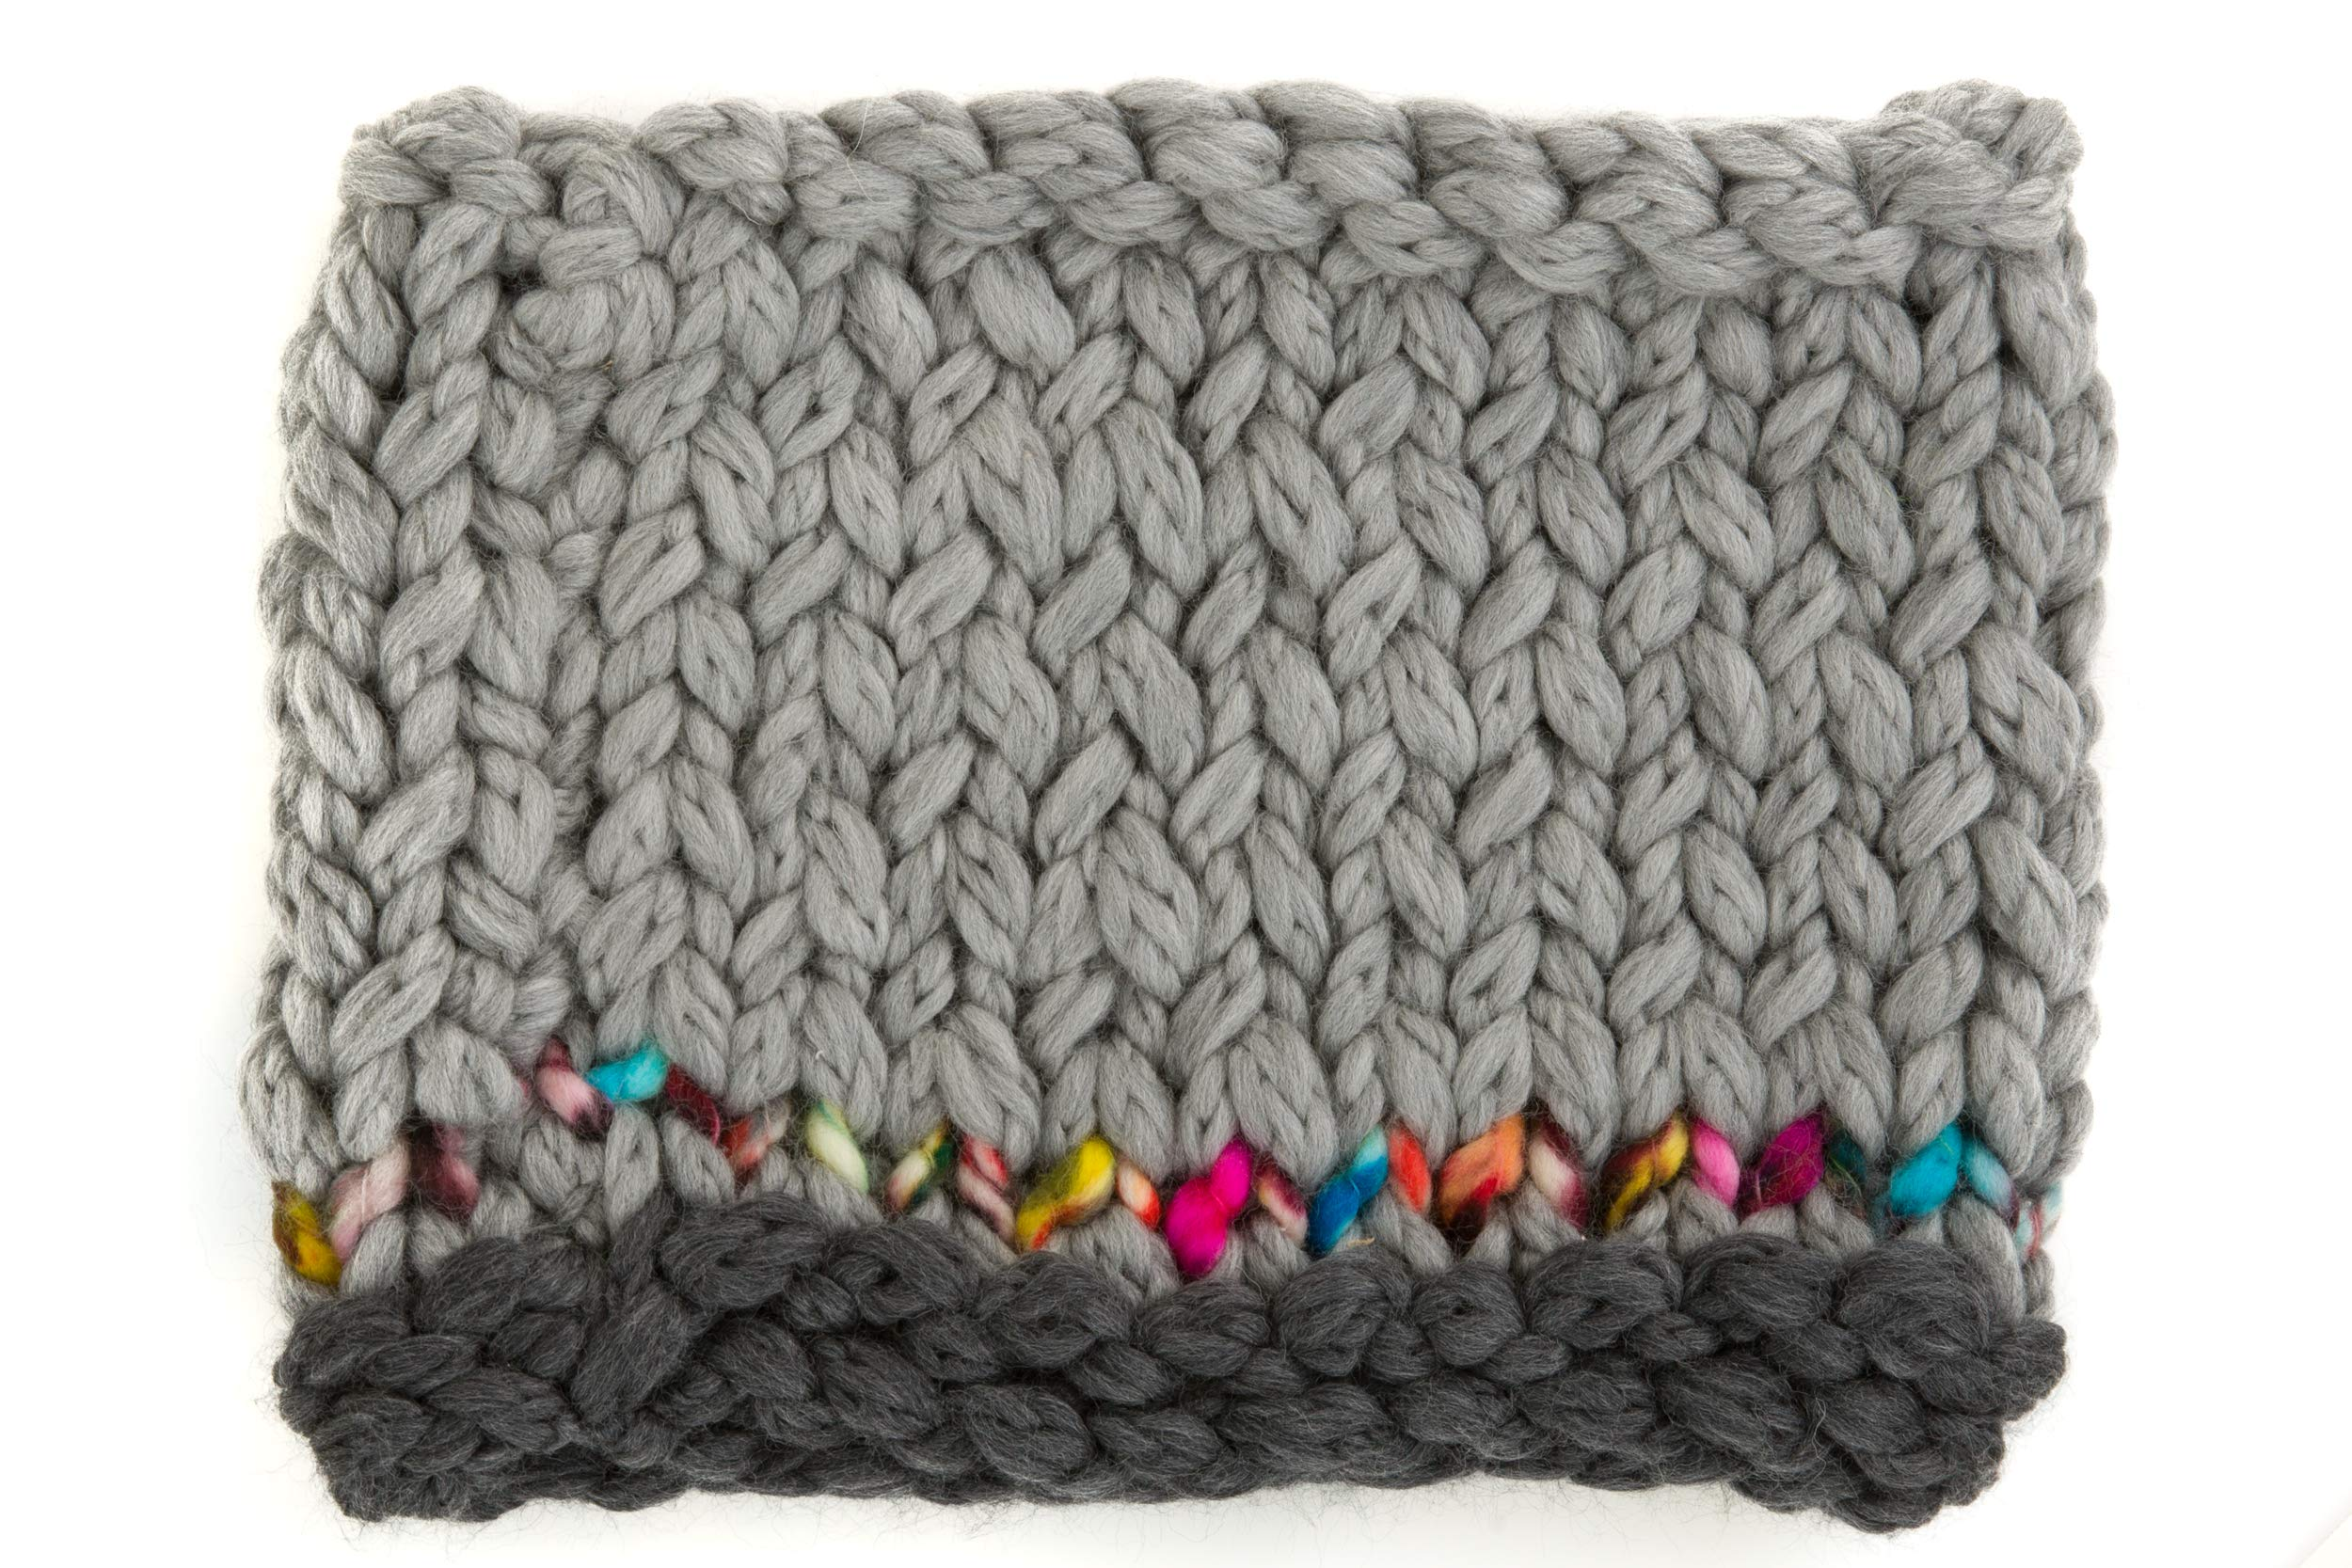 Bicolor Chunky Knitted Collar With Multicolor Detail, Merino Wool- 100% Made in Italy by Angiola made in Italy